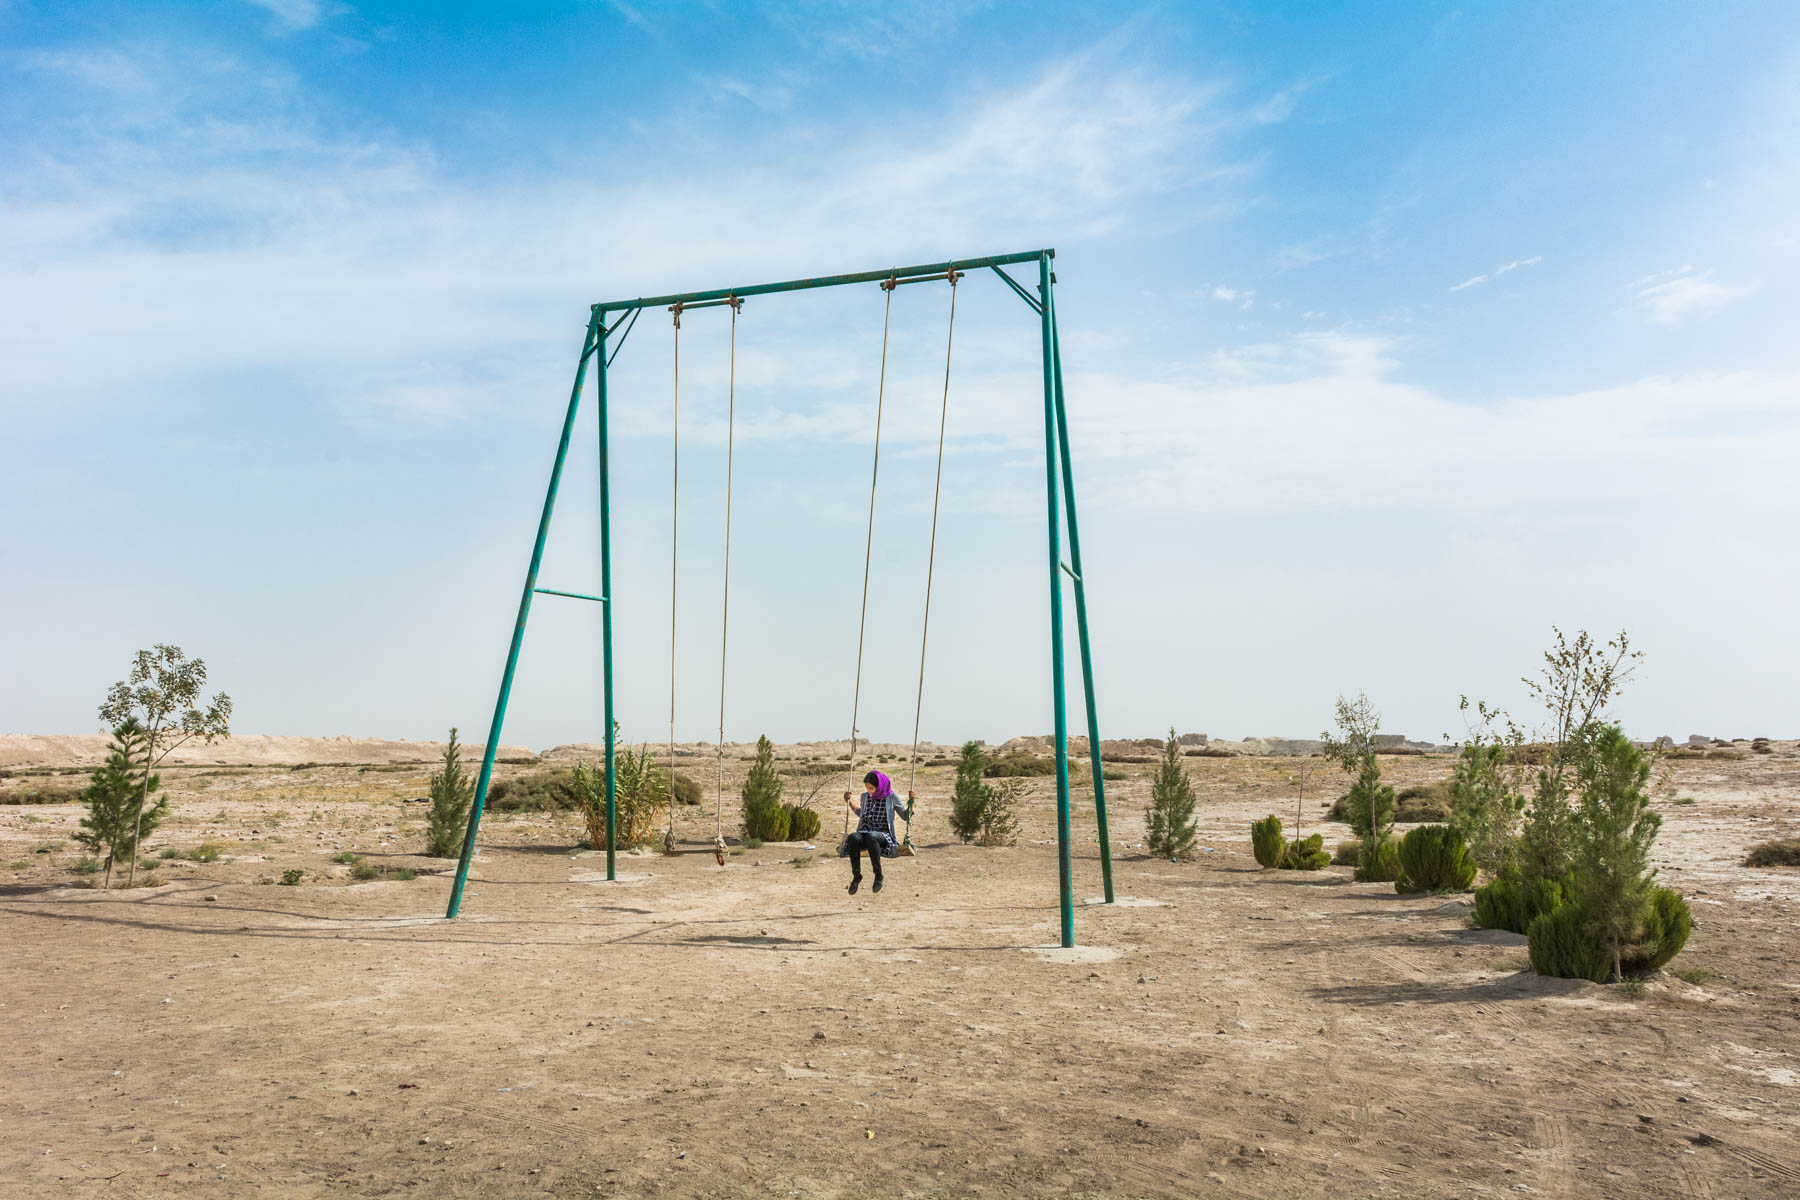 Photos of Balkh, Afghanistan - A girl swinging in Old Balkh - Lost With Purpose